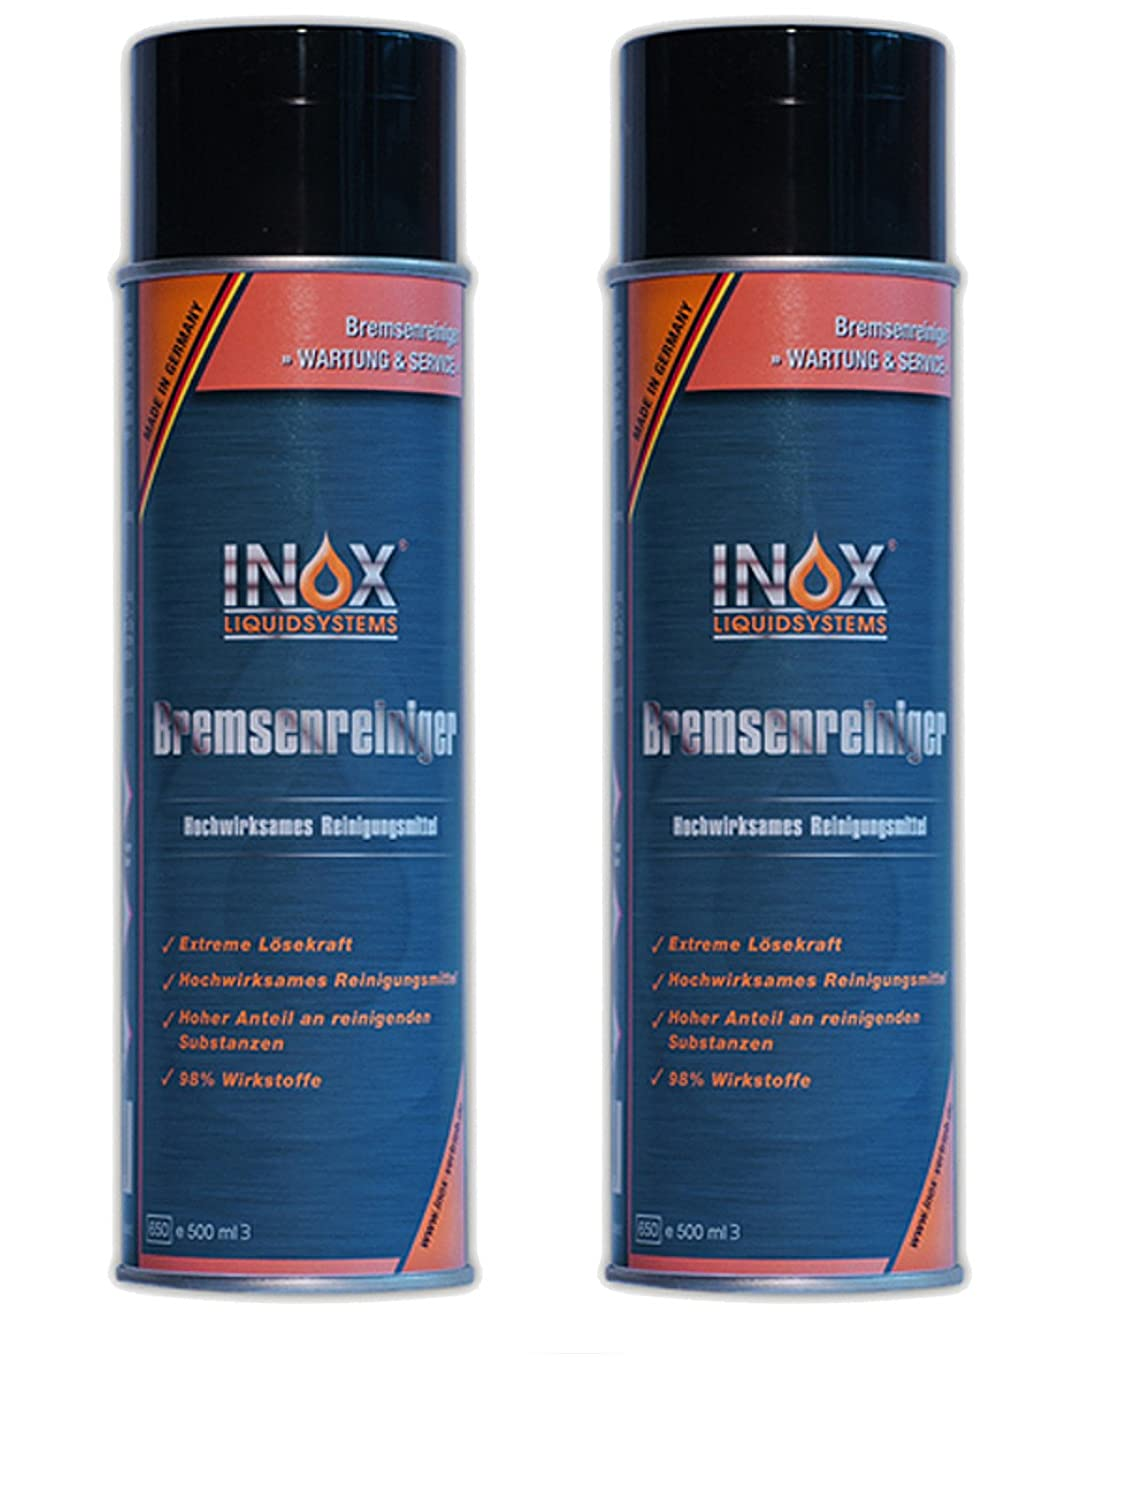 Inox Brake Cleaner, 2 x 500 ml, Acetone-Free Brake Disc Cleaner for Cars